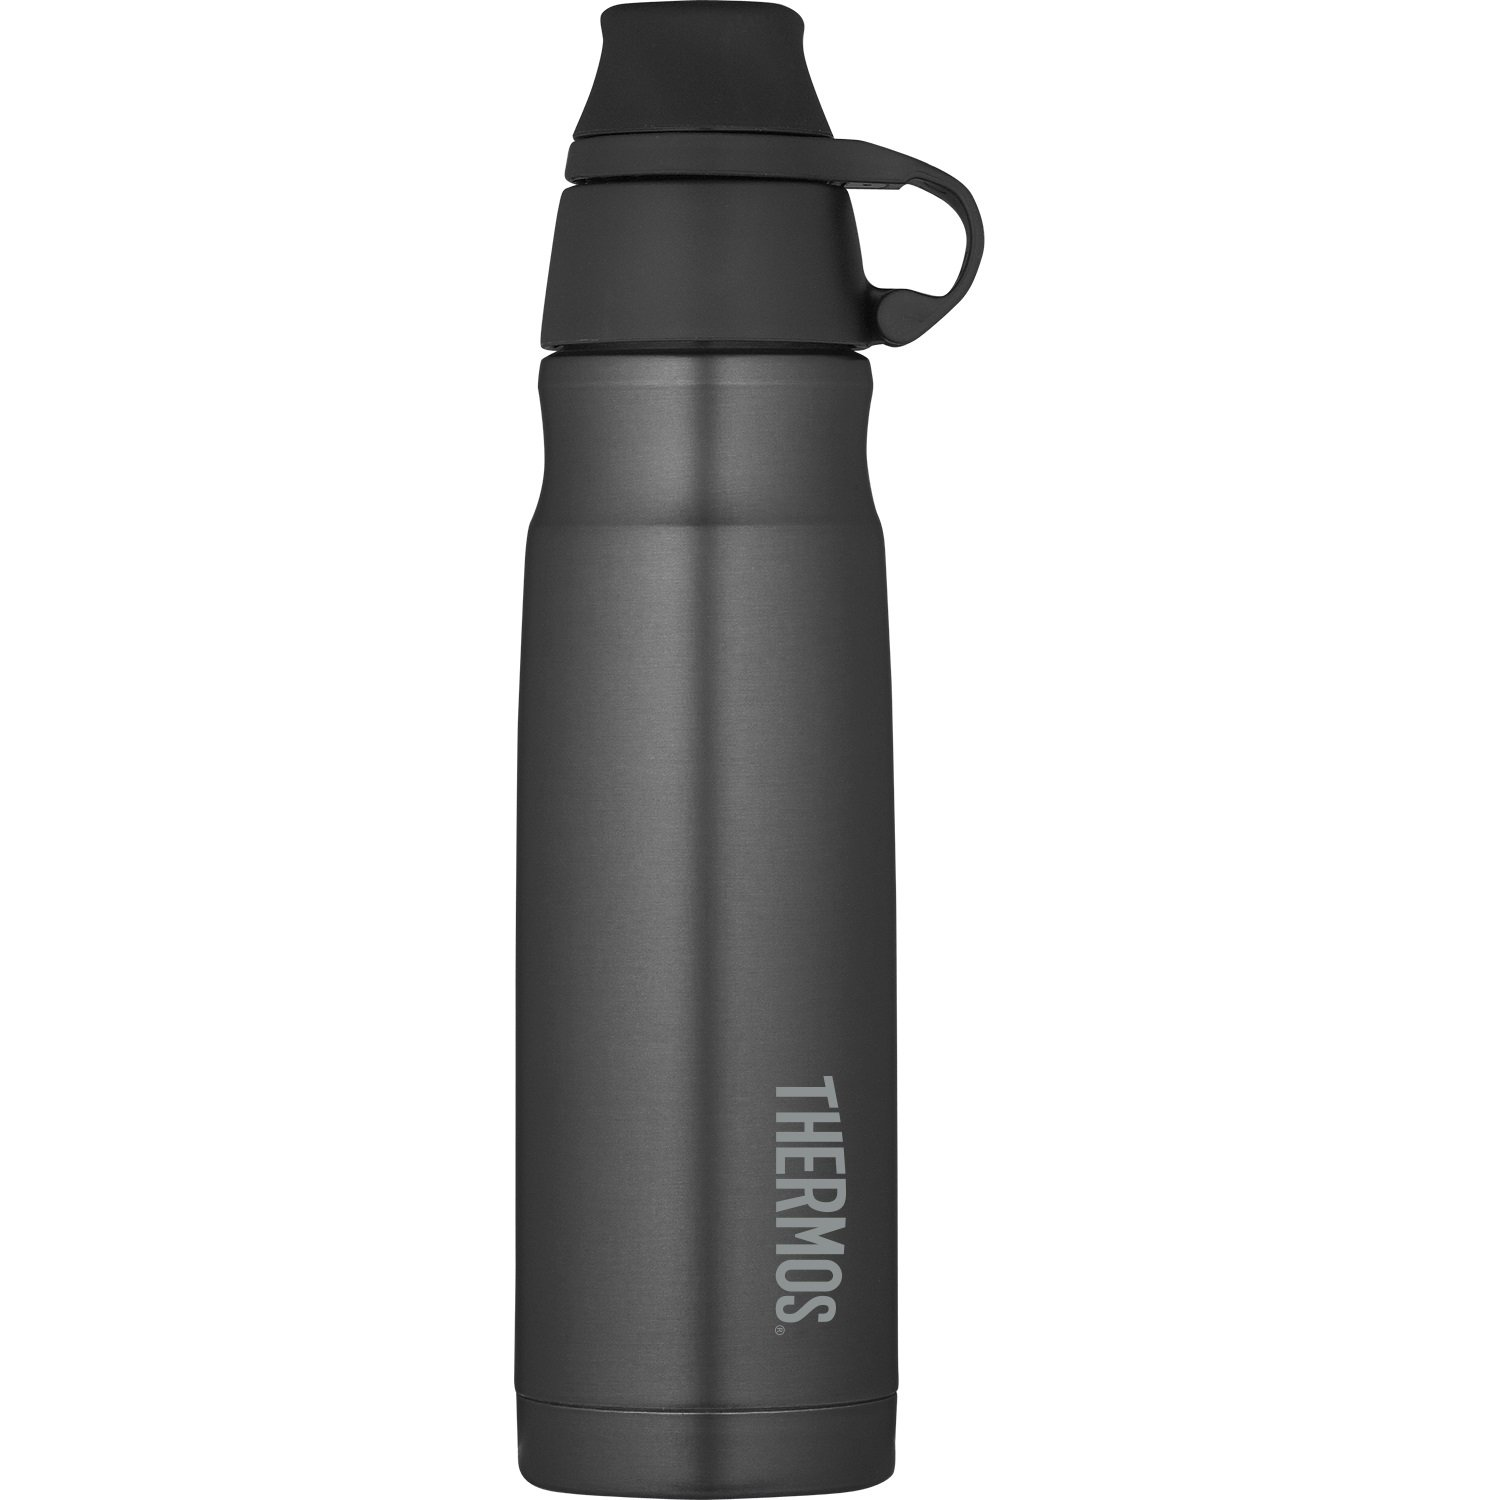 THERMOS Vacuum Insulated Stainless Steel Carbonated Beverage Bottle, 17-Ounce, Smoke